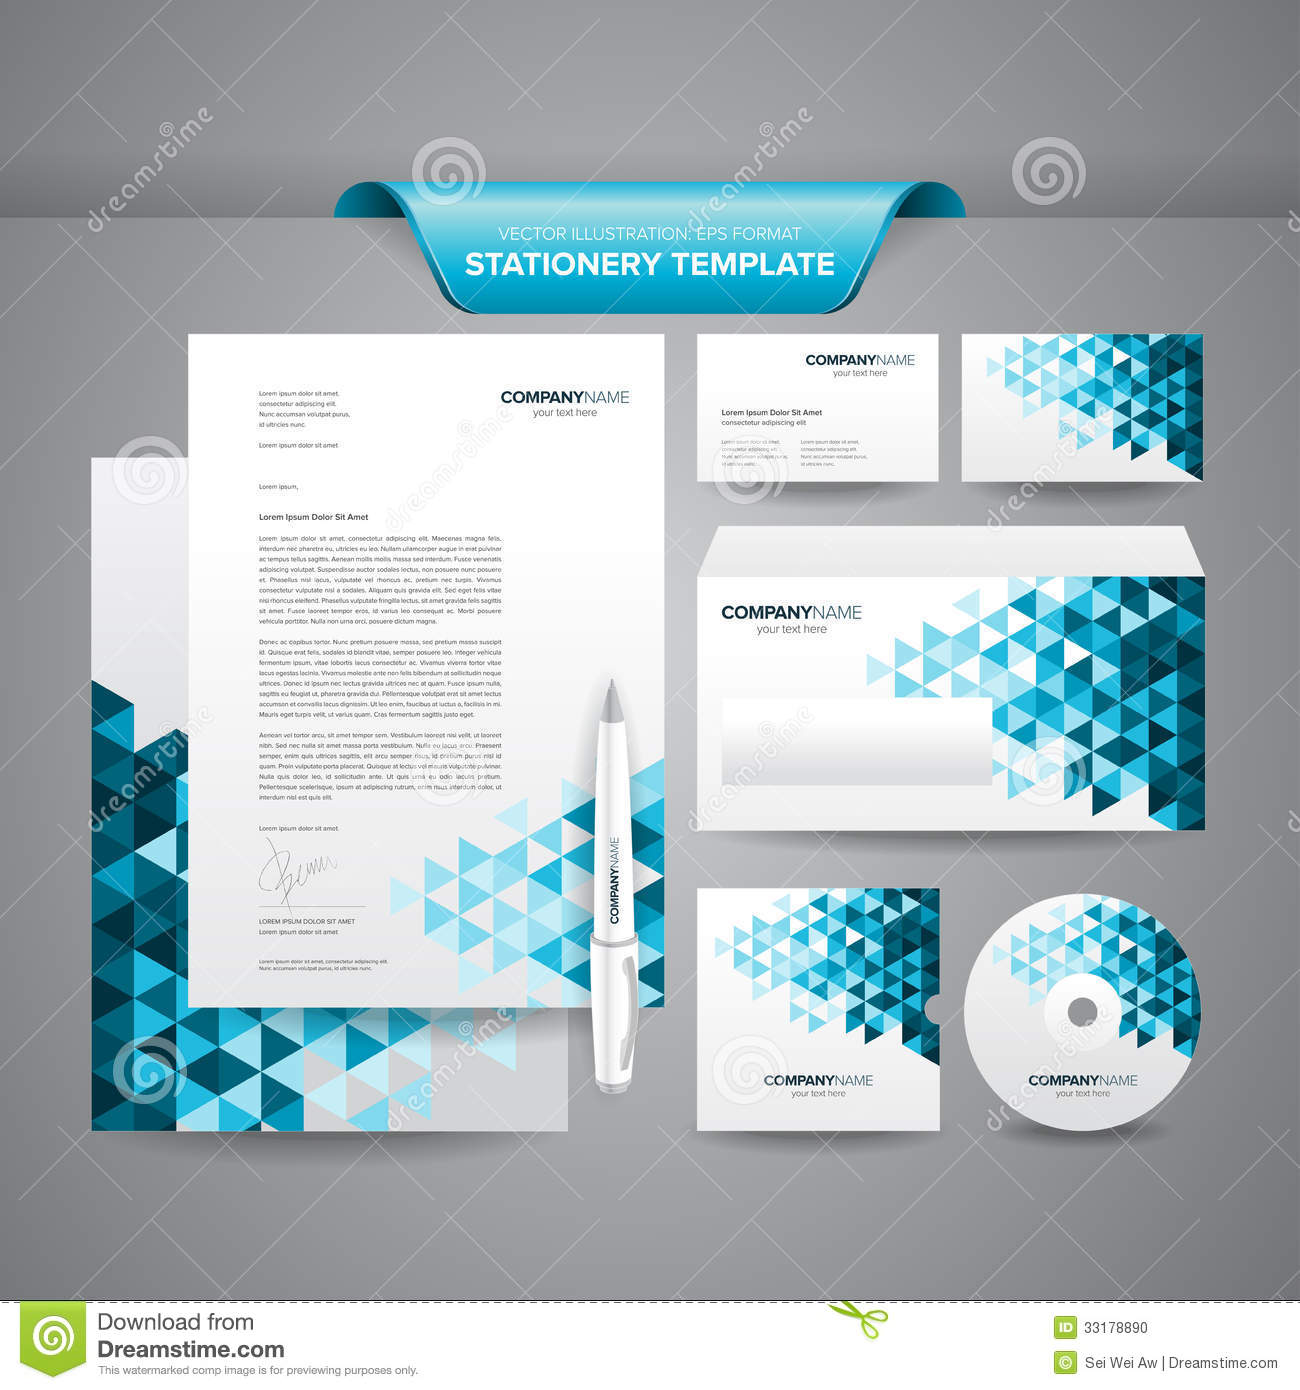 Business Stationery Template Stock Vector  Image 33178890